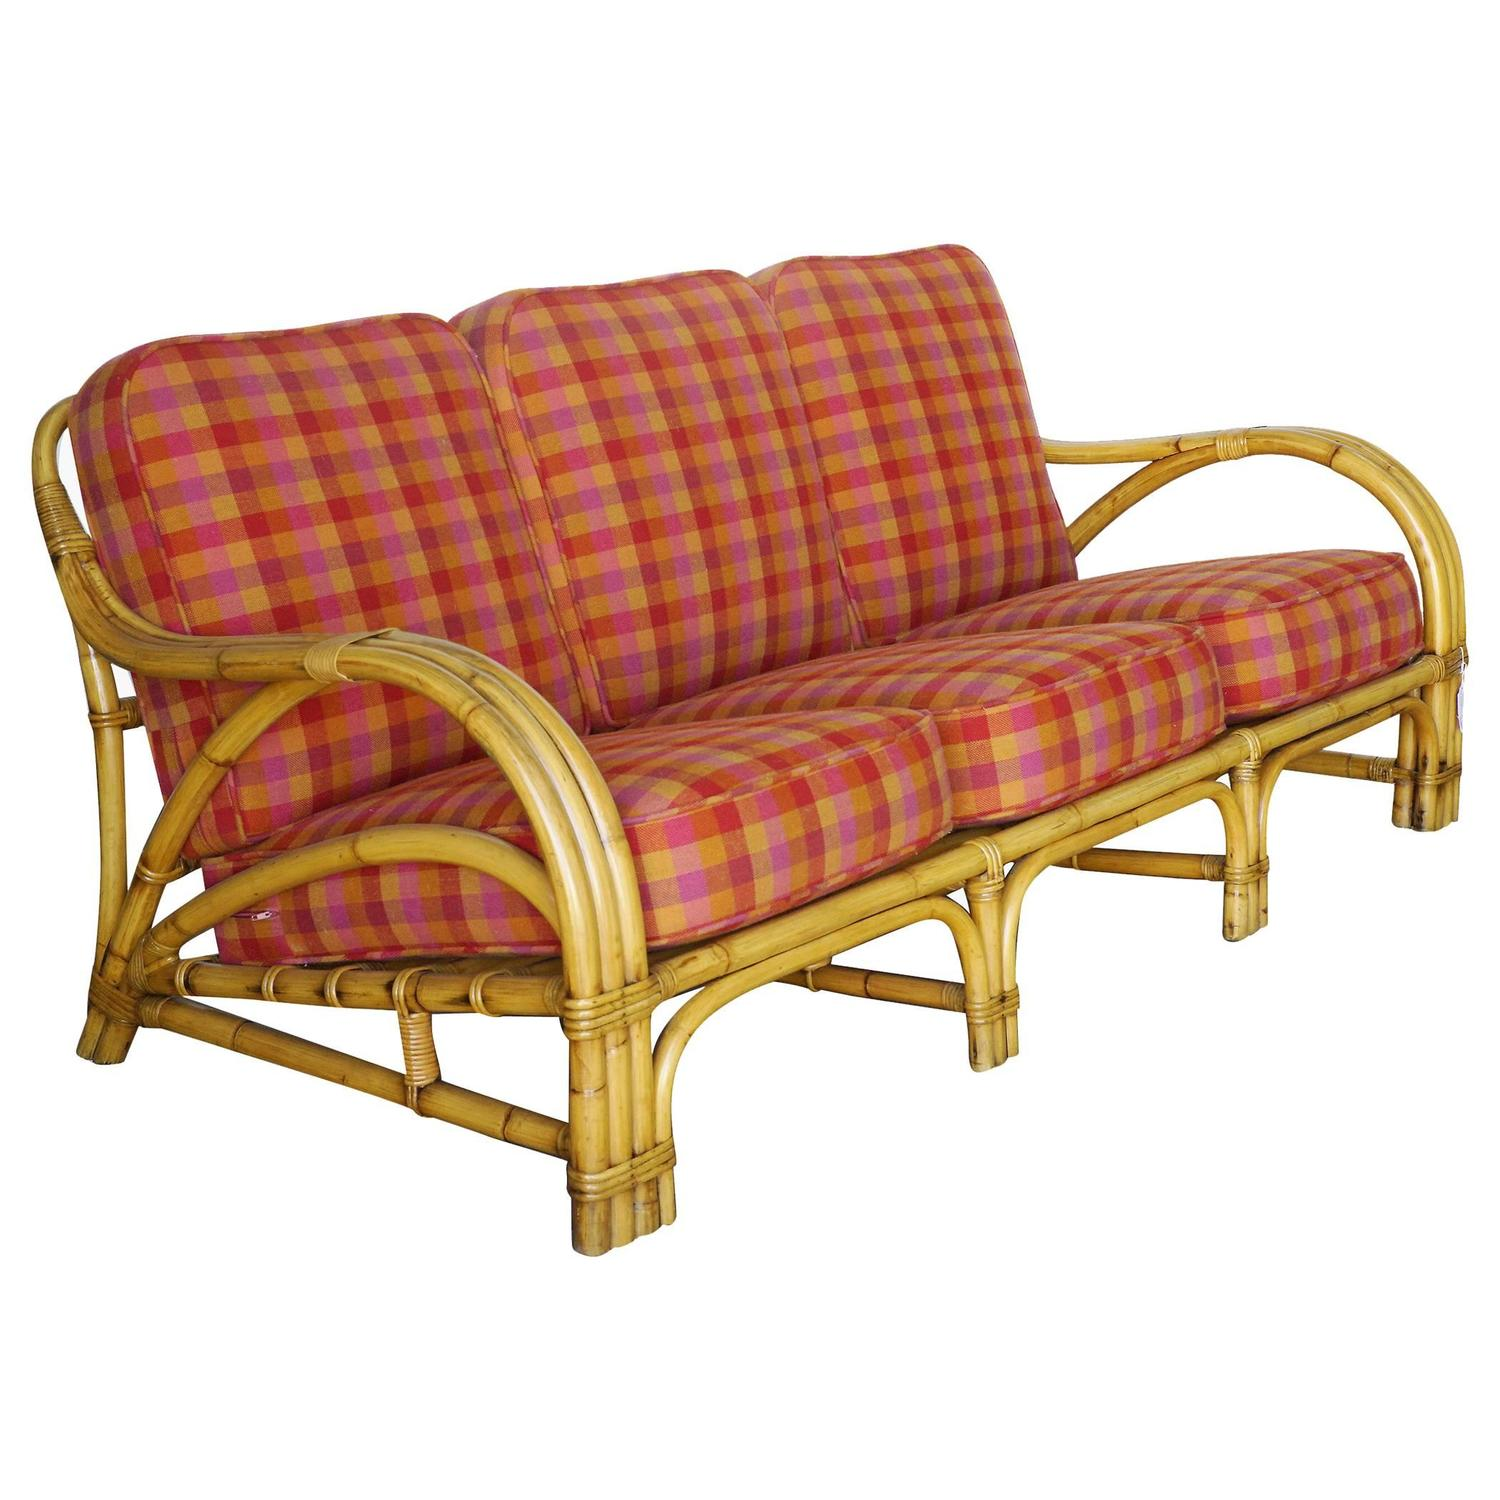 "Sofas For Sale Online: Tropical ""1940s Transition"" Three-Seat Rattan Sofa For"